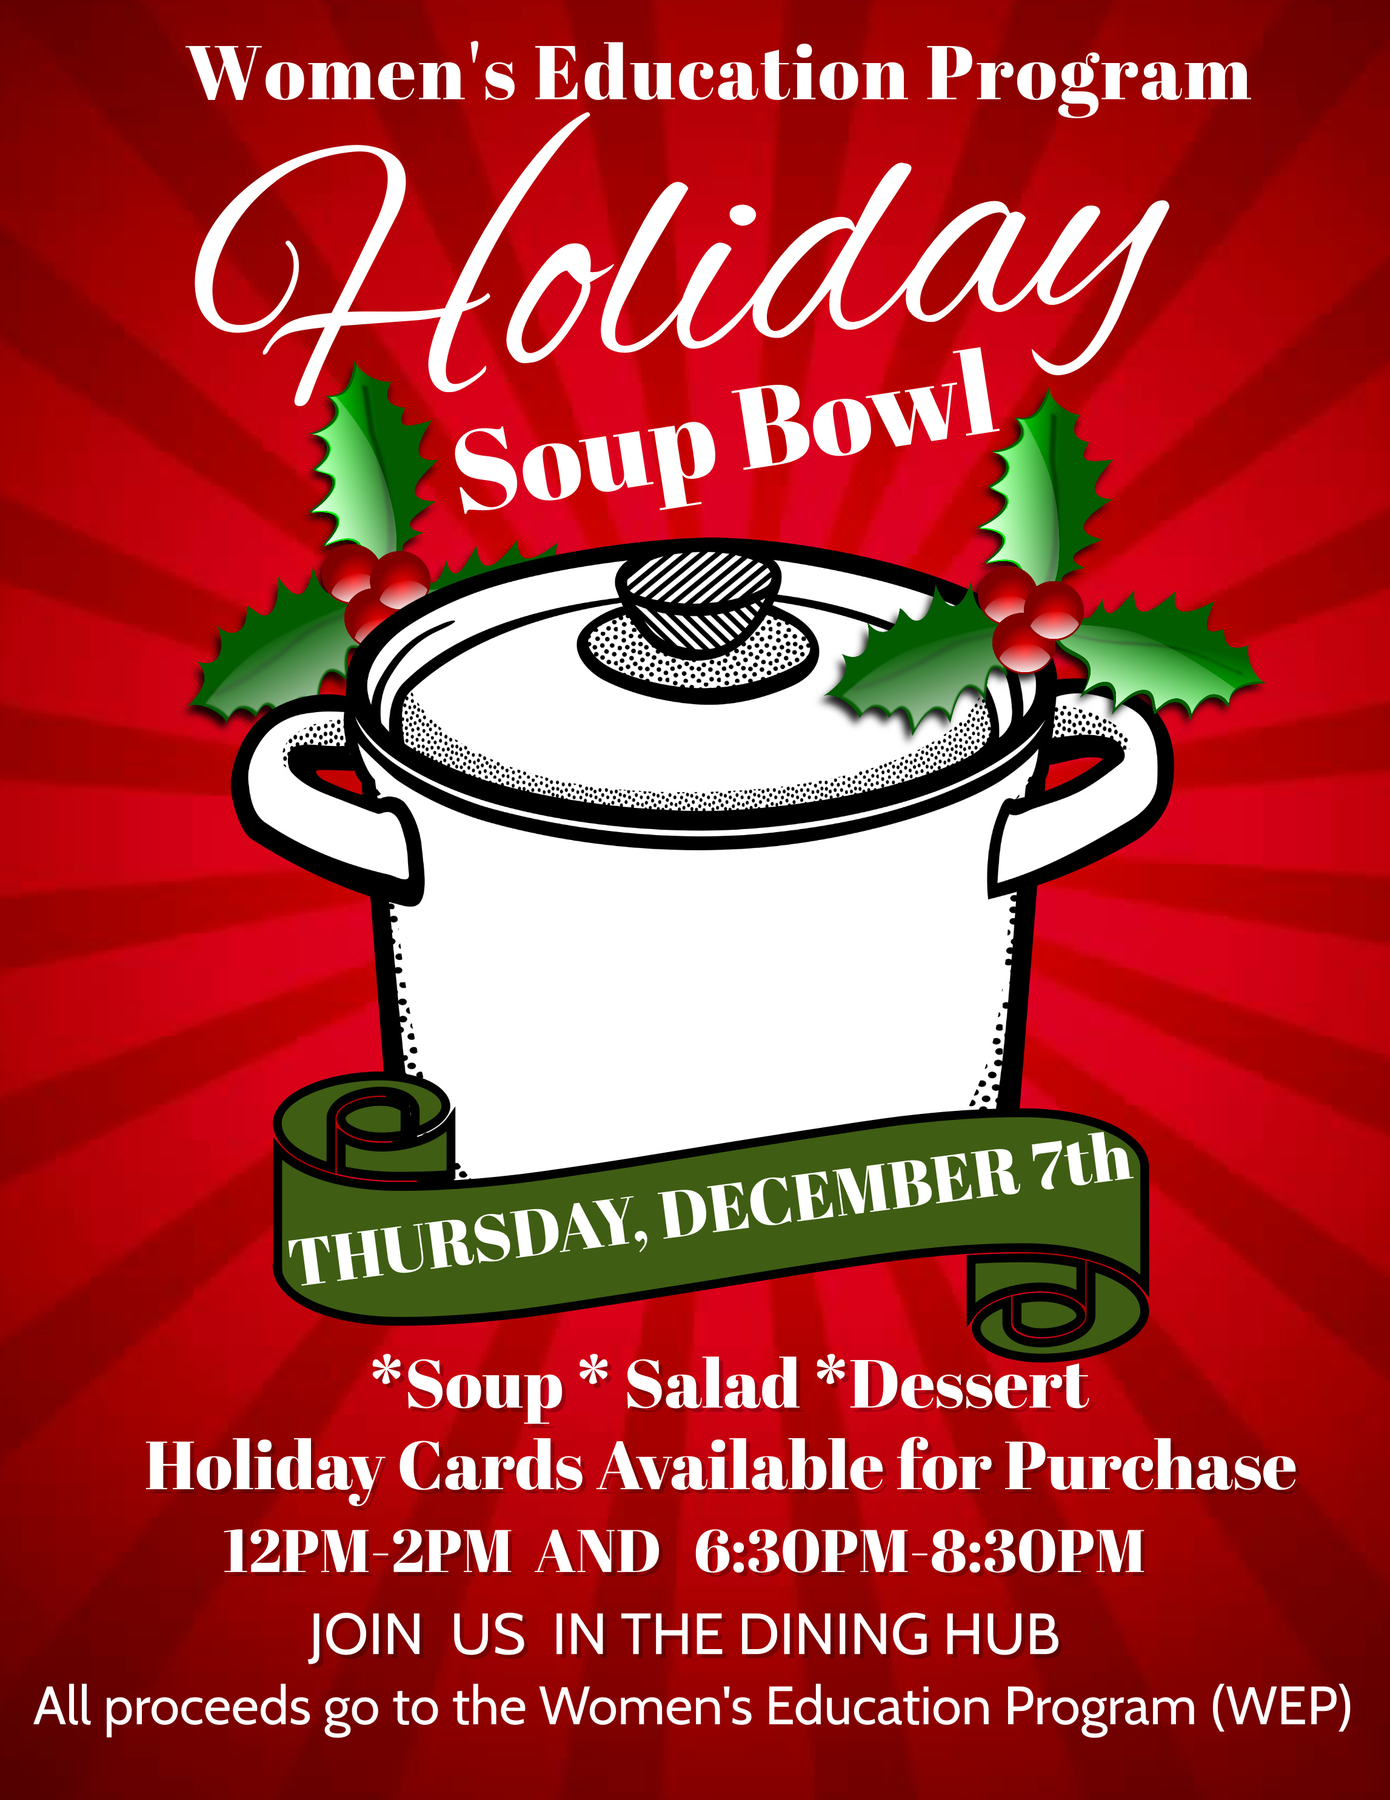 Holiday Soup Bowl advertisement